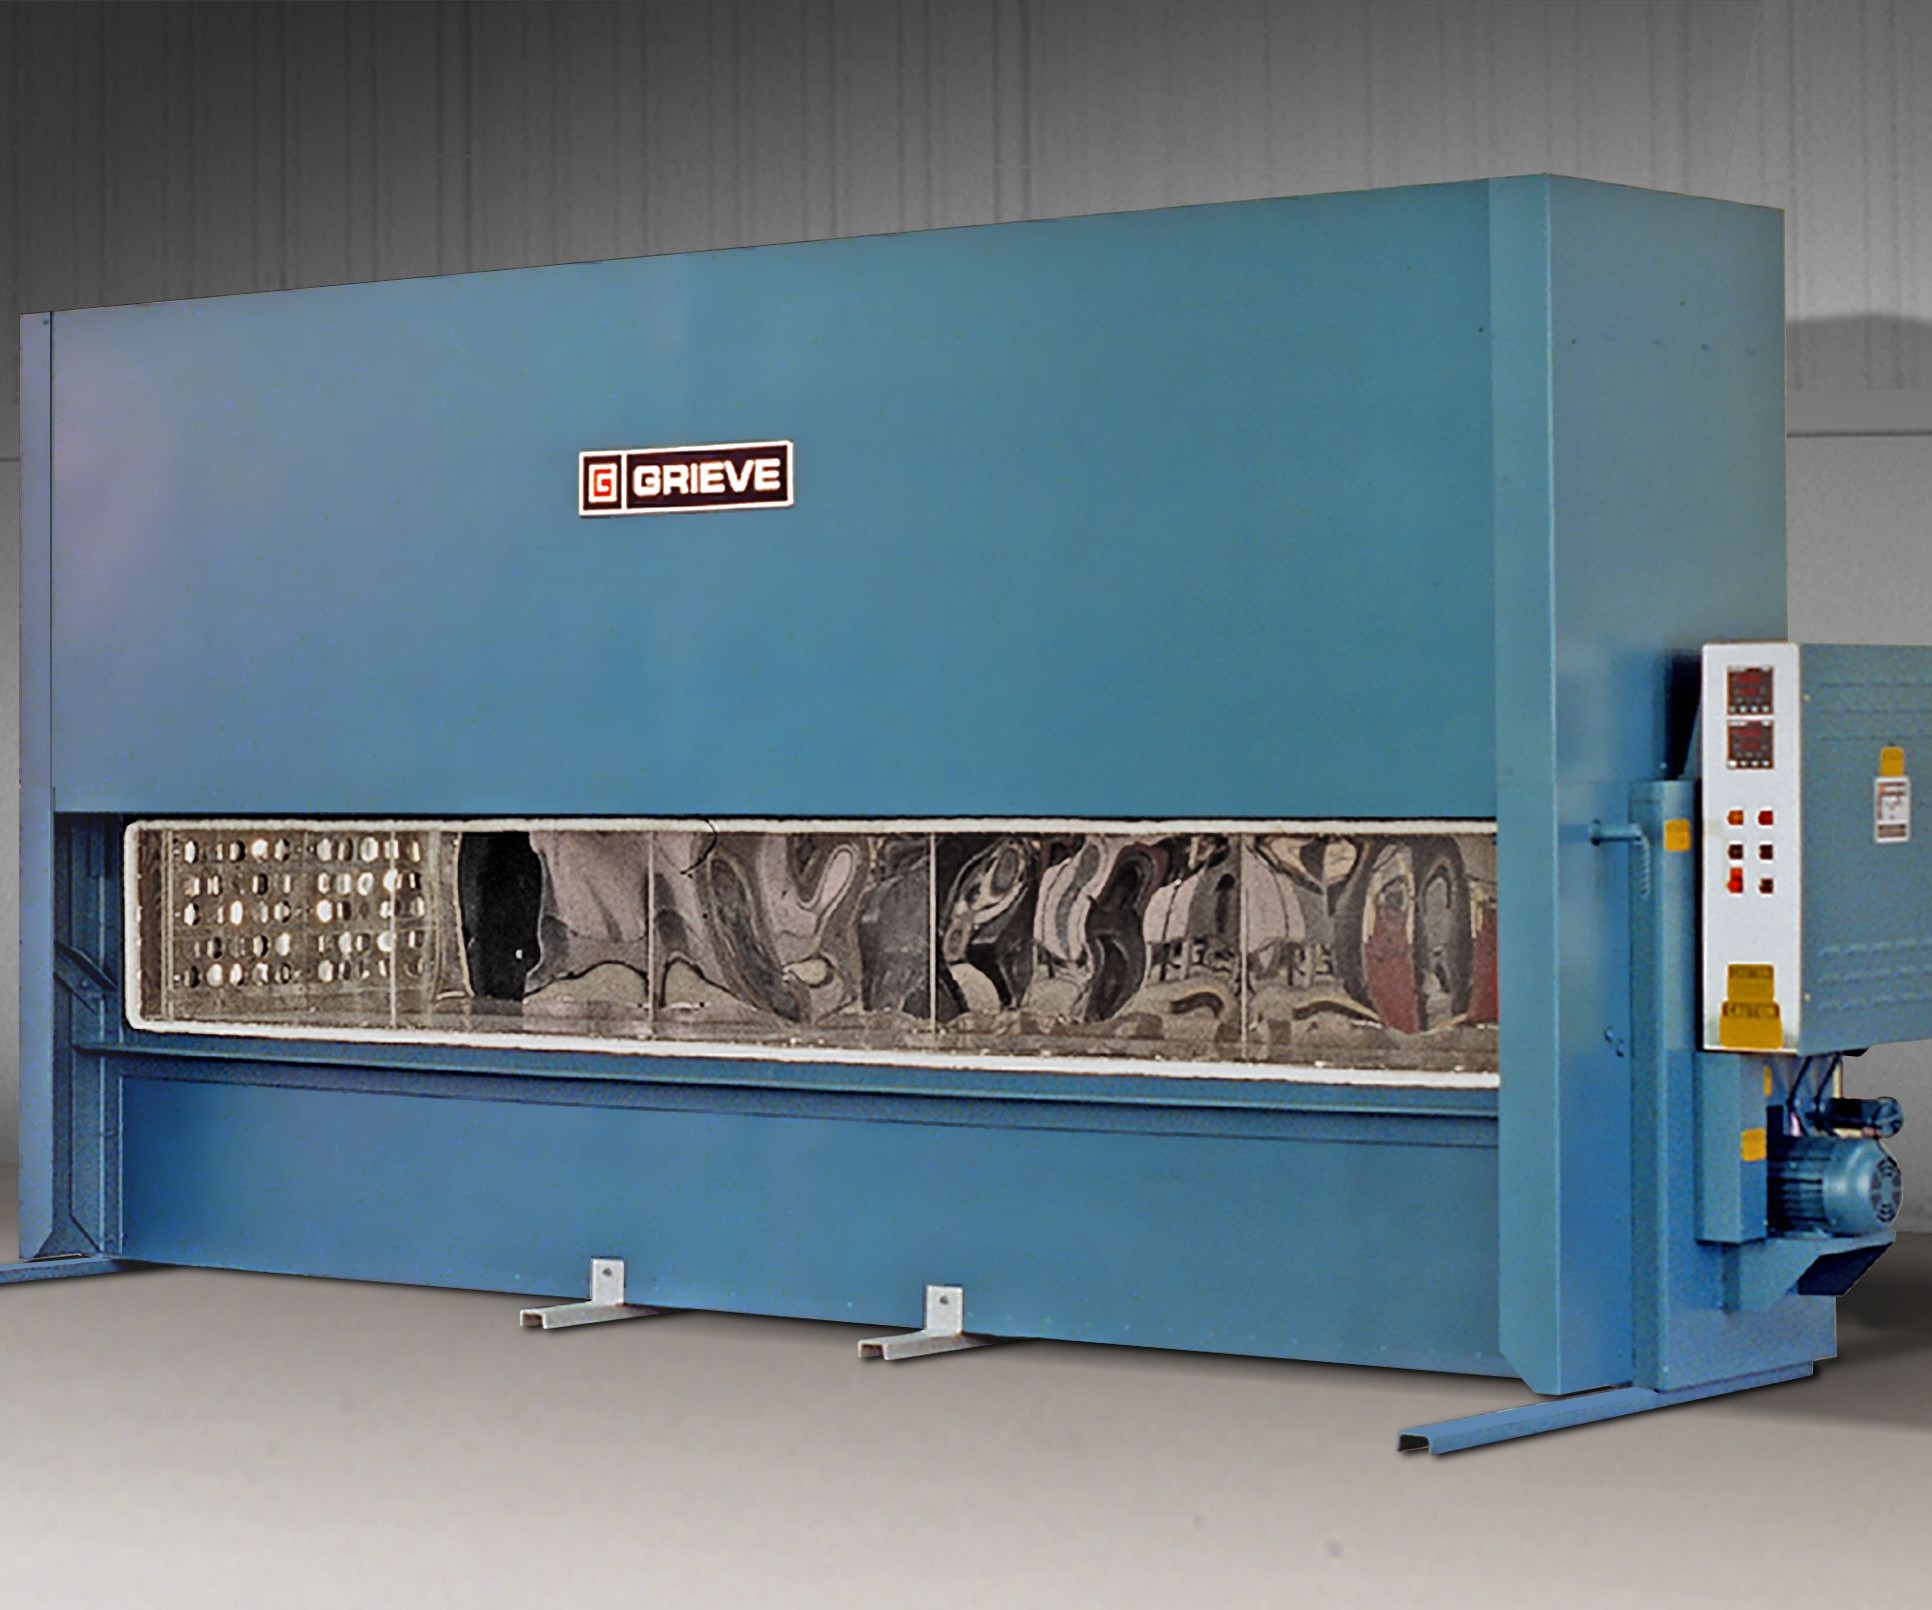 Grieve No. 890 cabinet oven